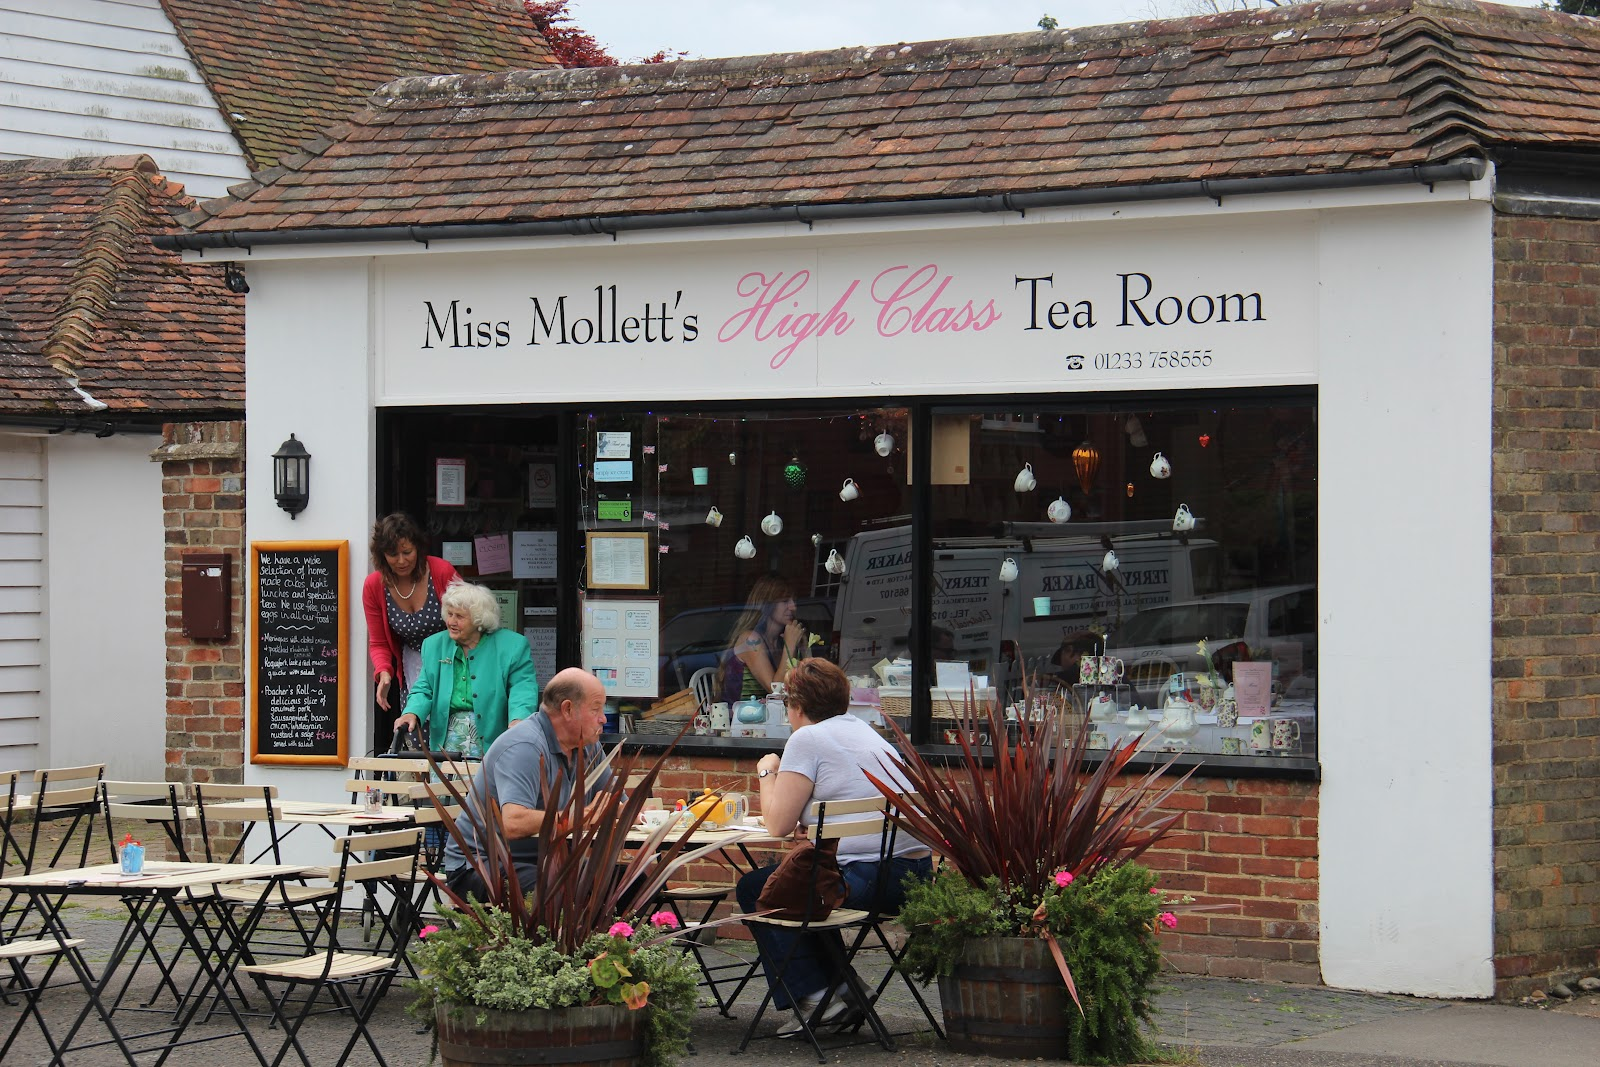 Appledore Kent Tea Room